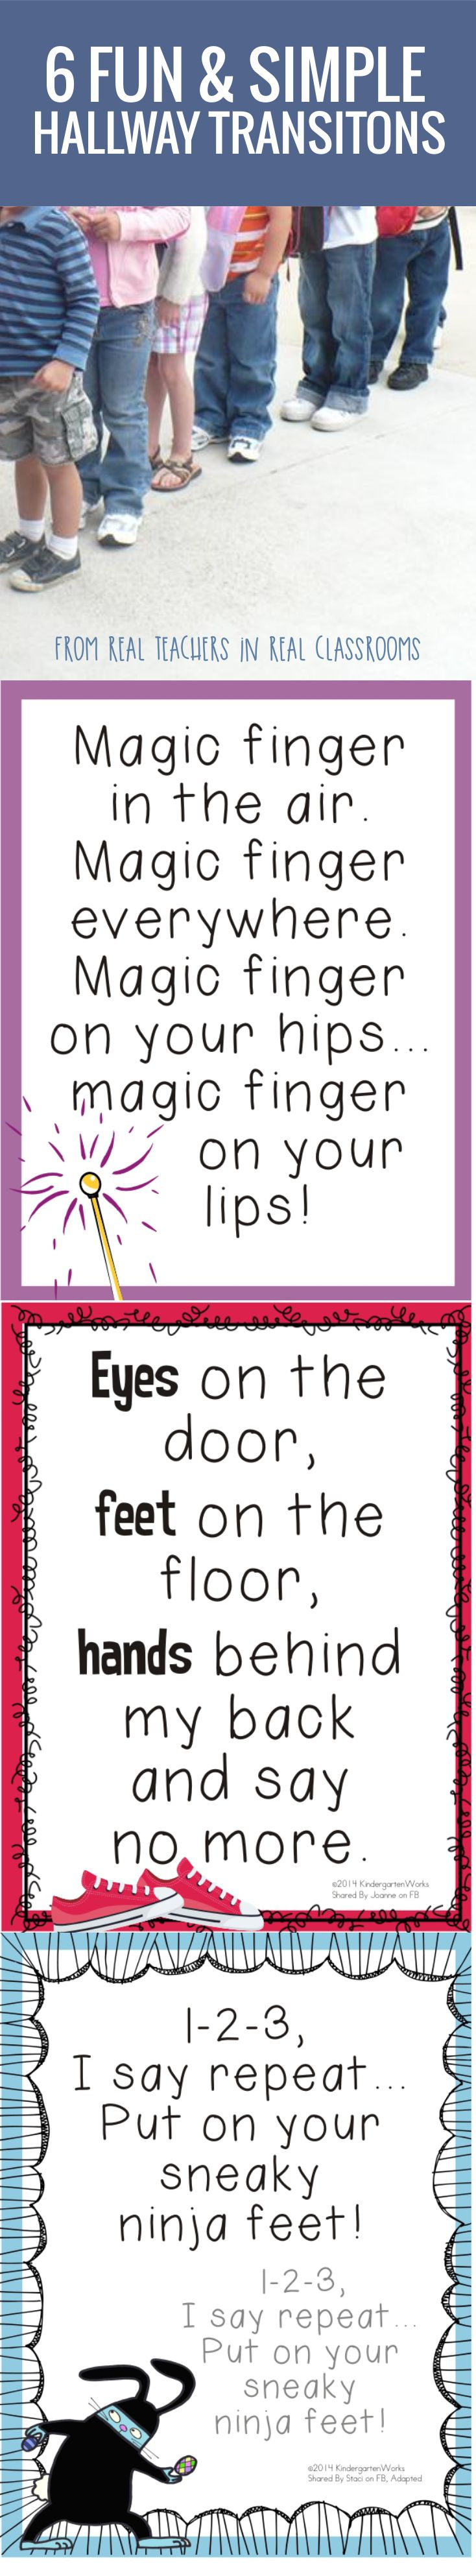 6 Fun and Simple Hallways Transitions for Kindergarten